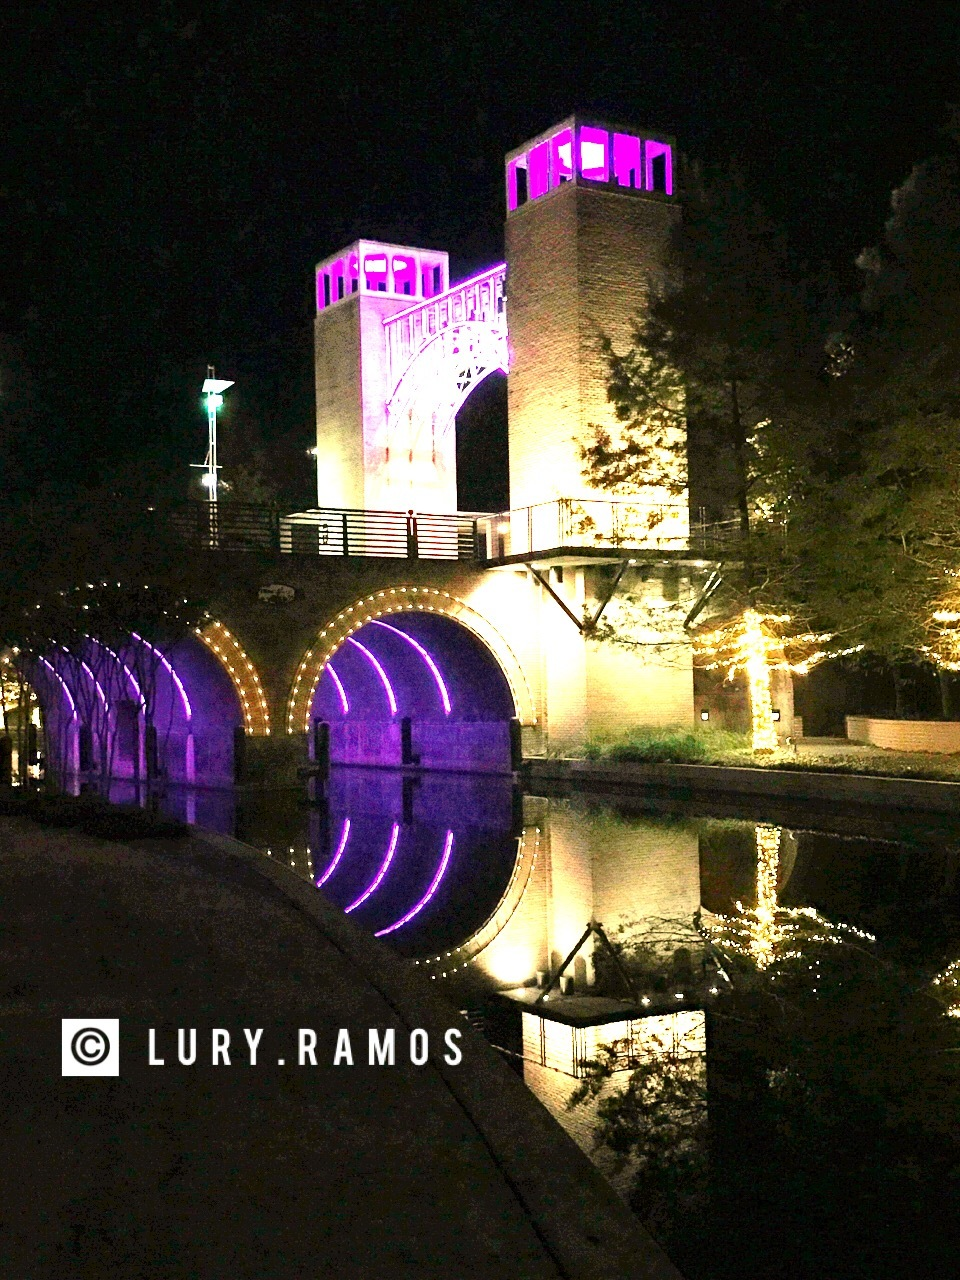 The Waterway, The Woodlands, Texas by Lury Ramos